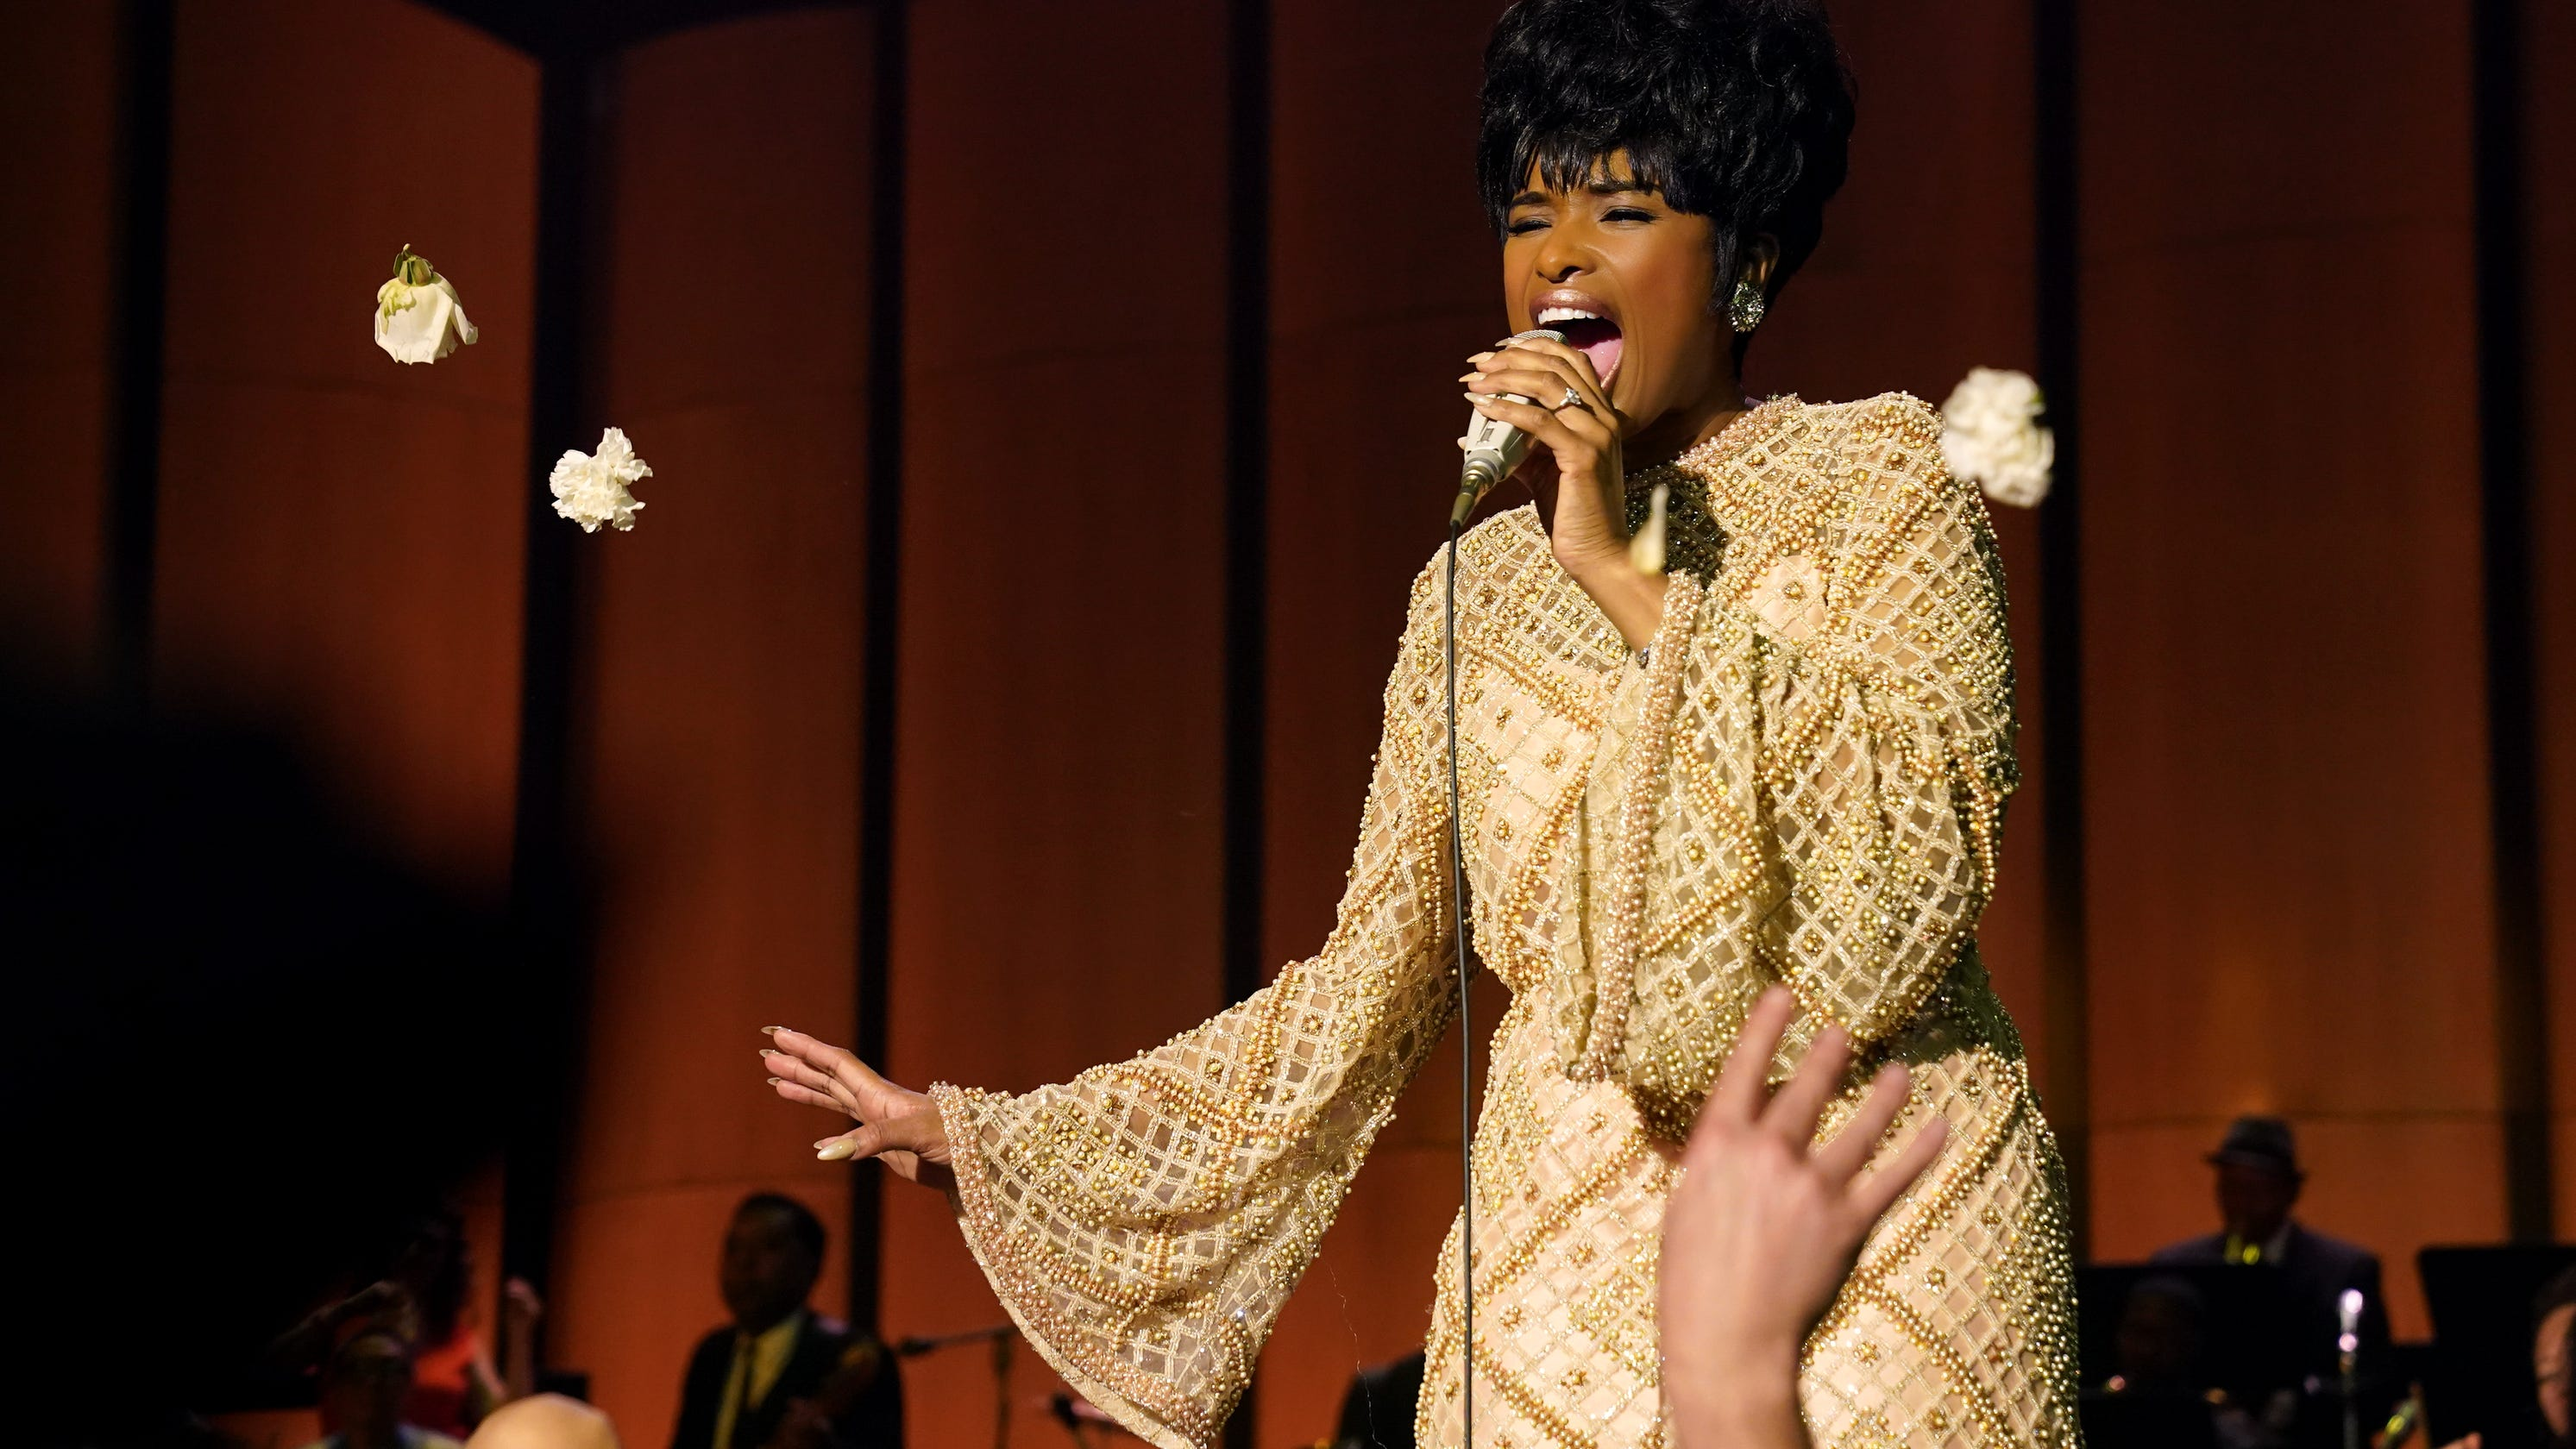 New 'Respect' featurette goes behind the scenes of upcoming Aretha Franklin biopic